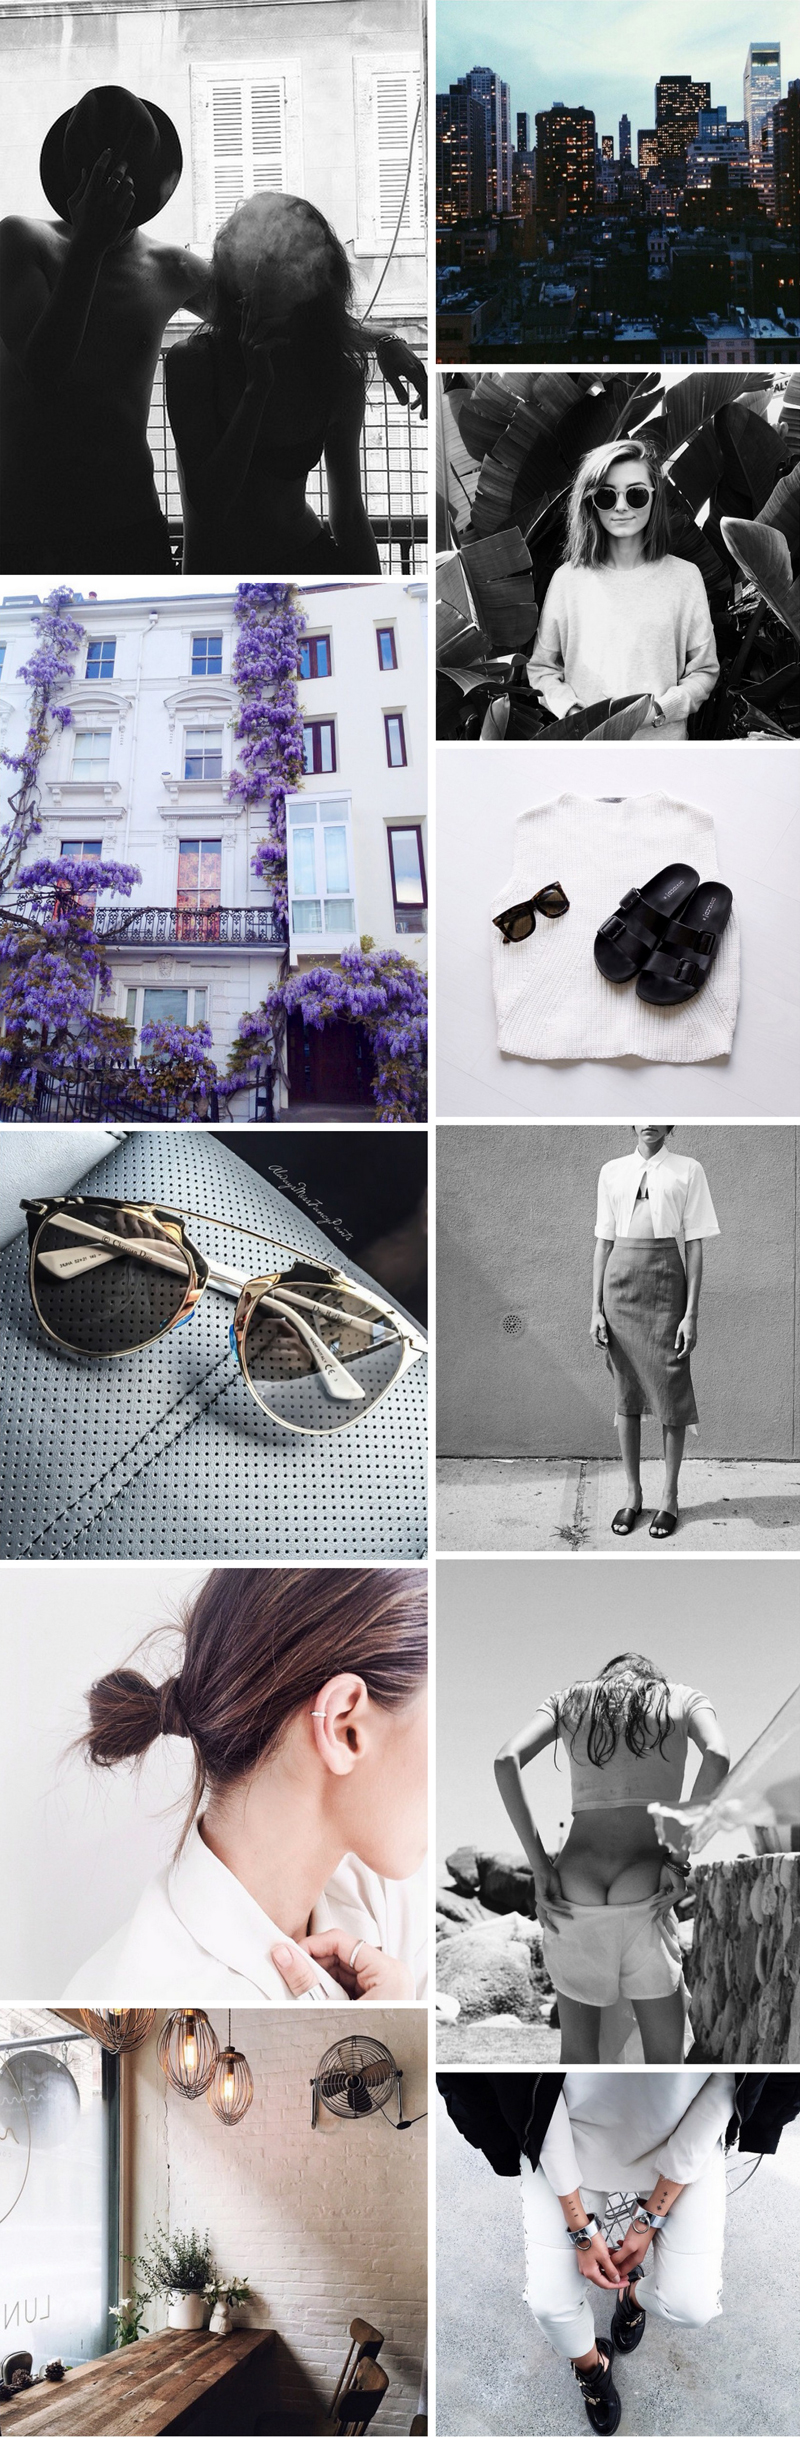 April Fashion Collage | Stolen Inspiration | Kendra Alexandra | Fashion Blogger